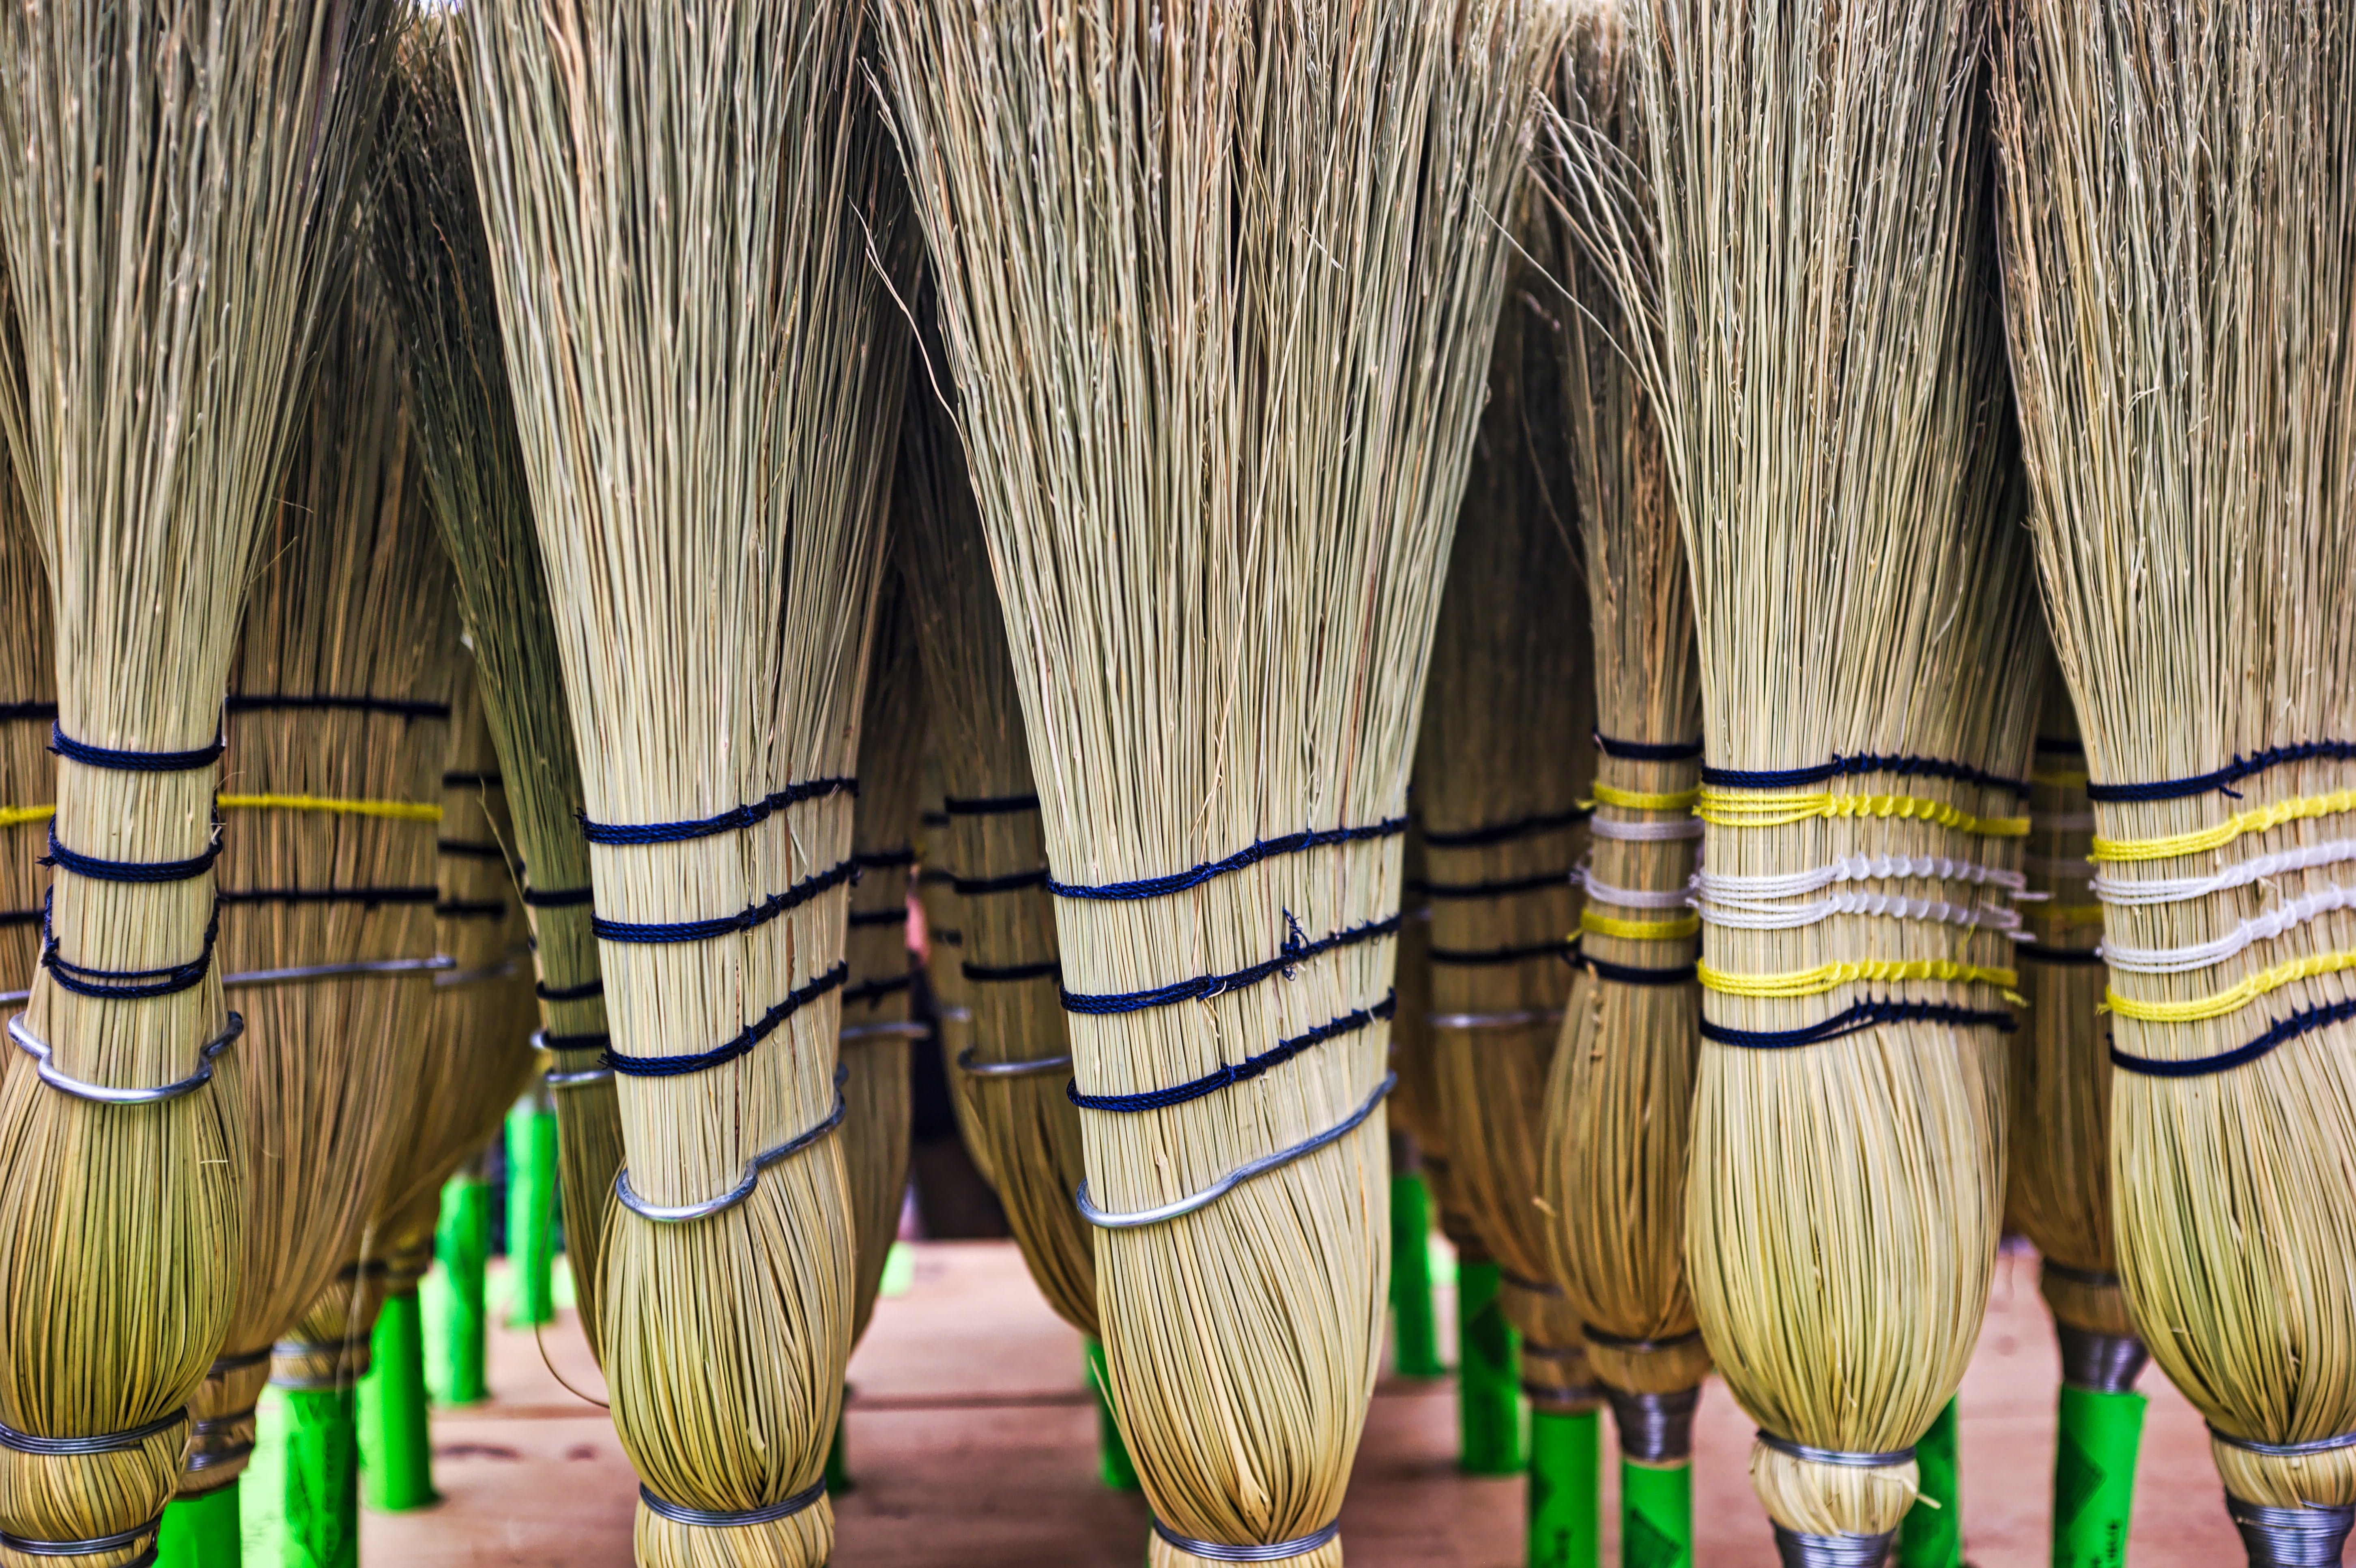 Row of traditional looking brooms